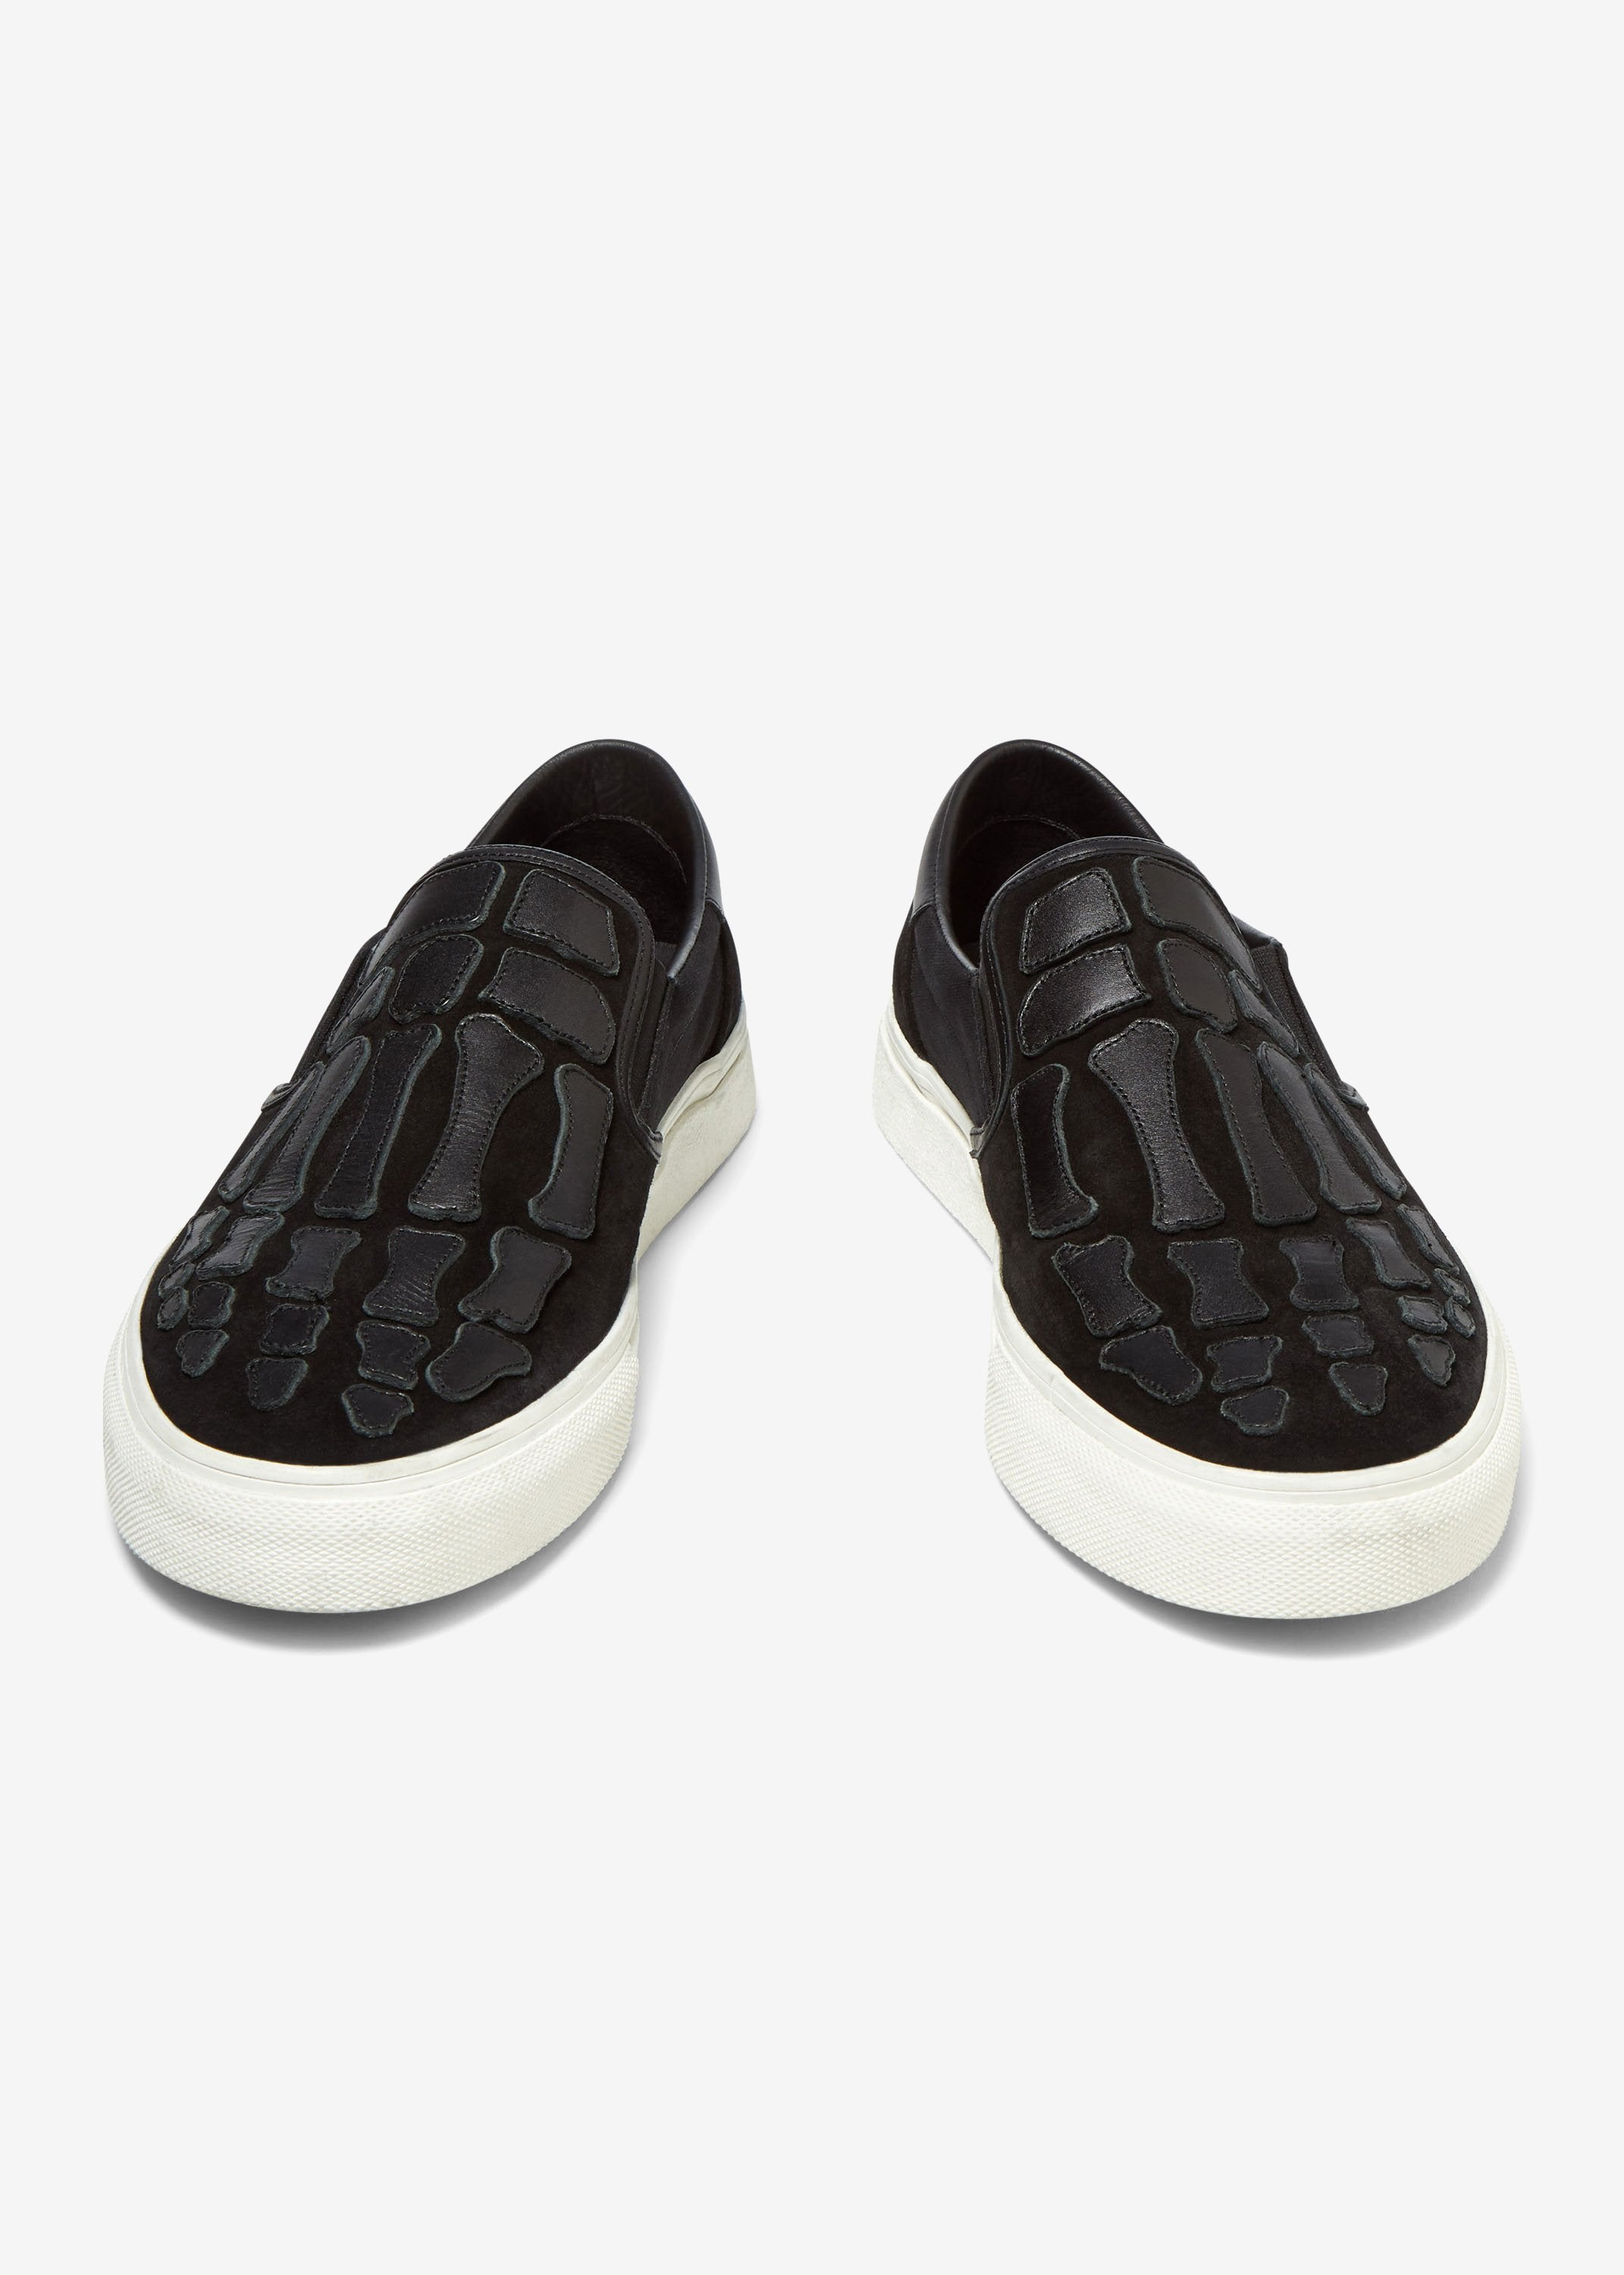 skel-toe-slip-on-black-black-image-2